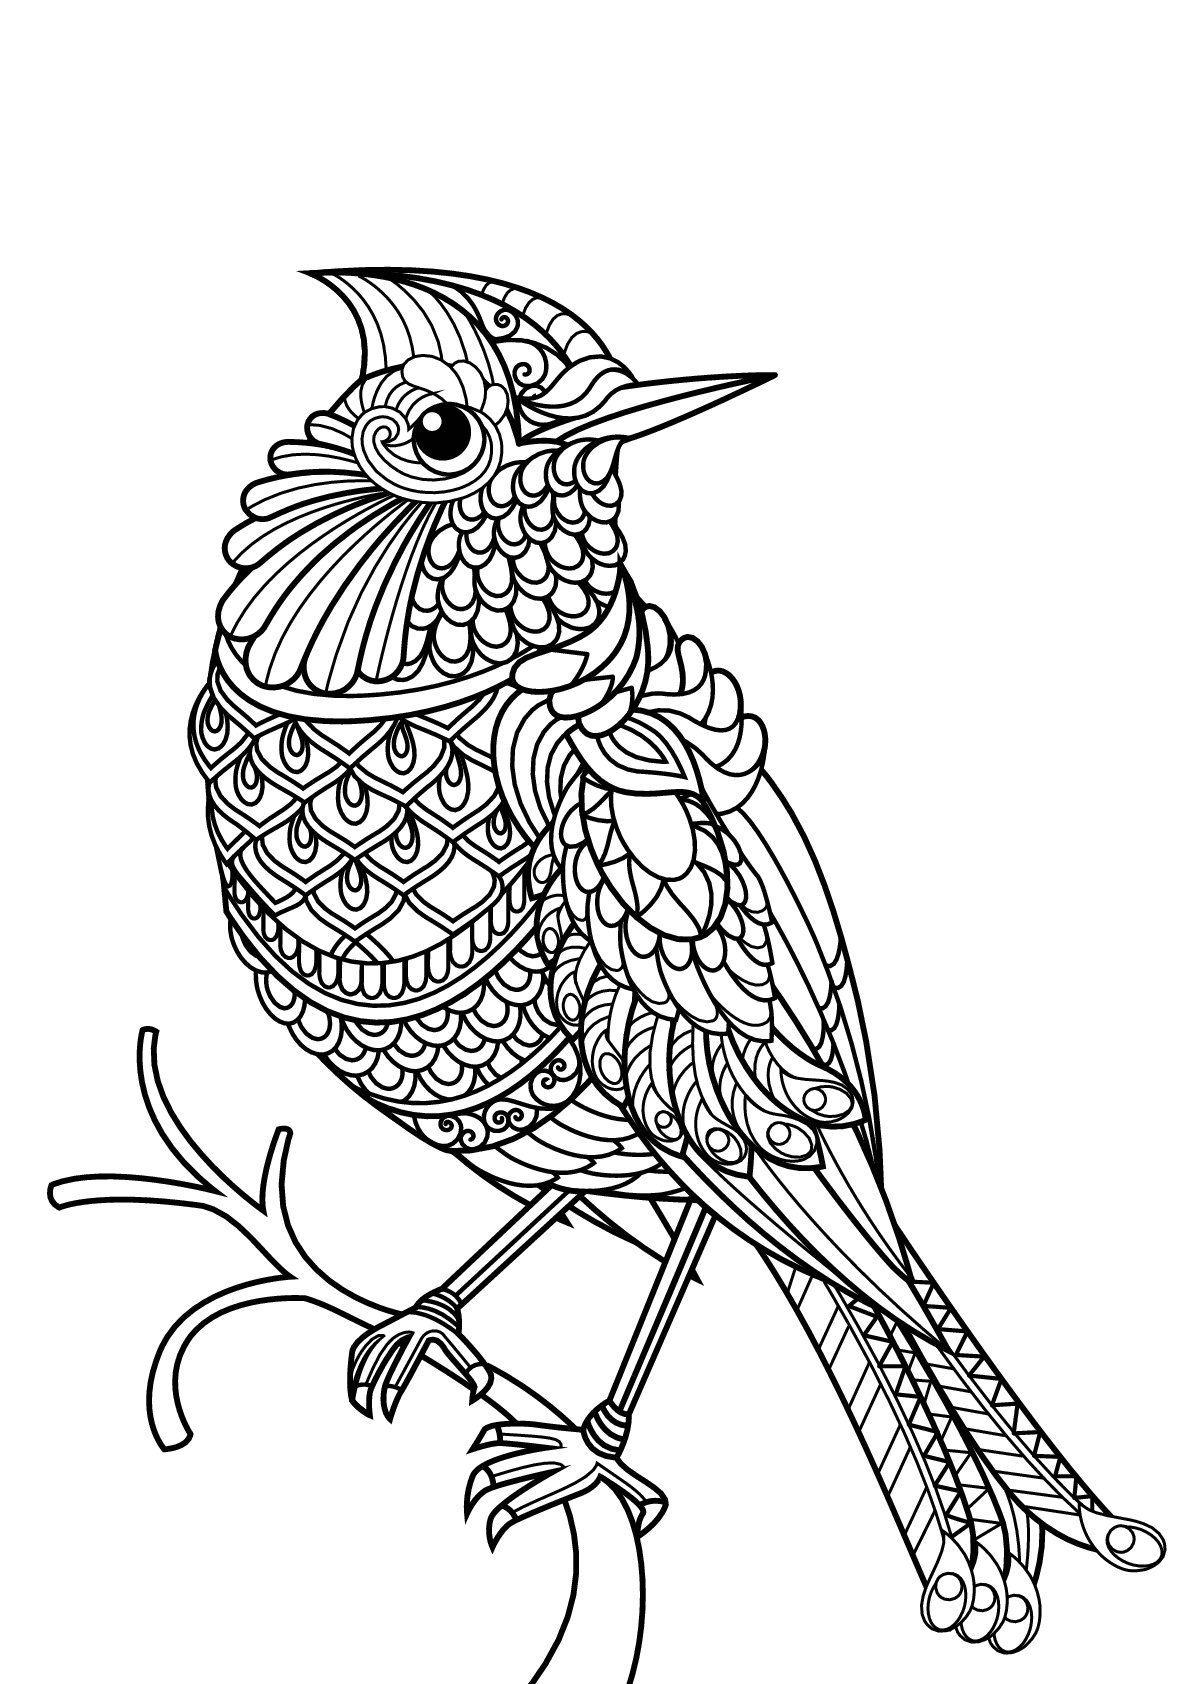 animal coloring pages free free book bird birds adult coloring pages coloring animal pages free